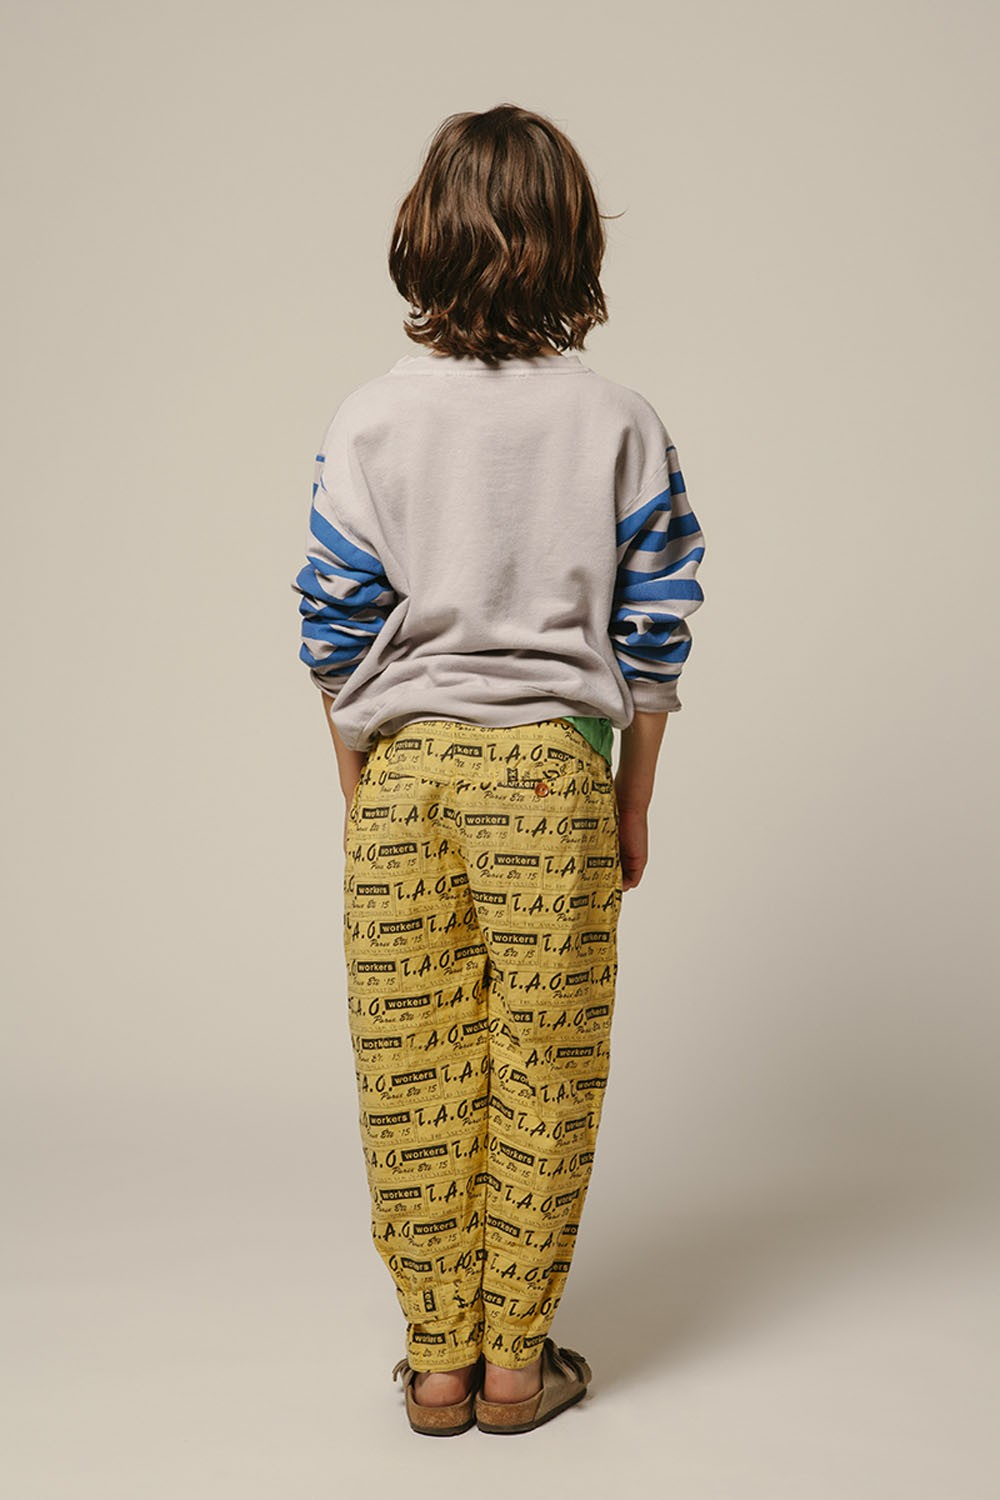 The-Animals-Observatory-Bear-Long-Sleeve-Blue-Stripes-Sweater-Ashes-of-Roses-000179-www.kidsdepartment.co.uk-32.jpg